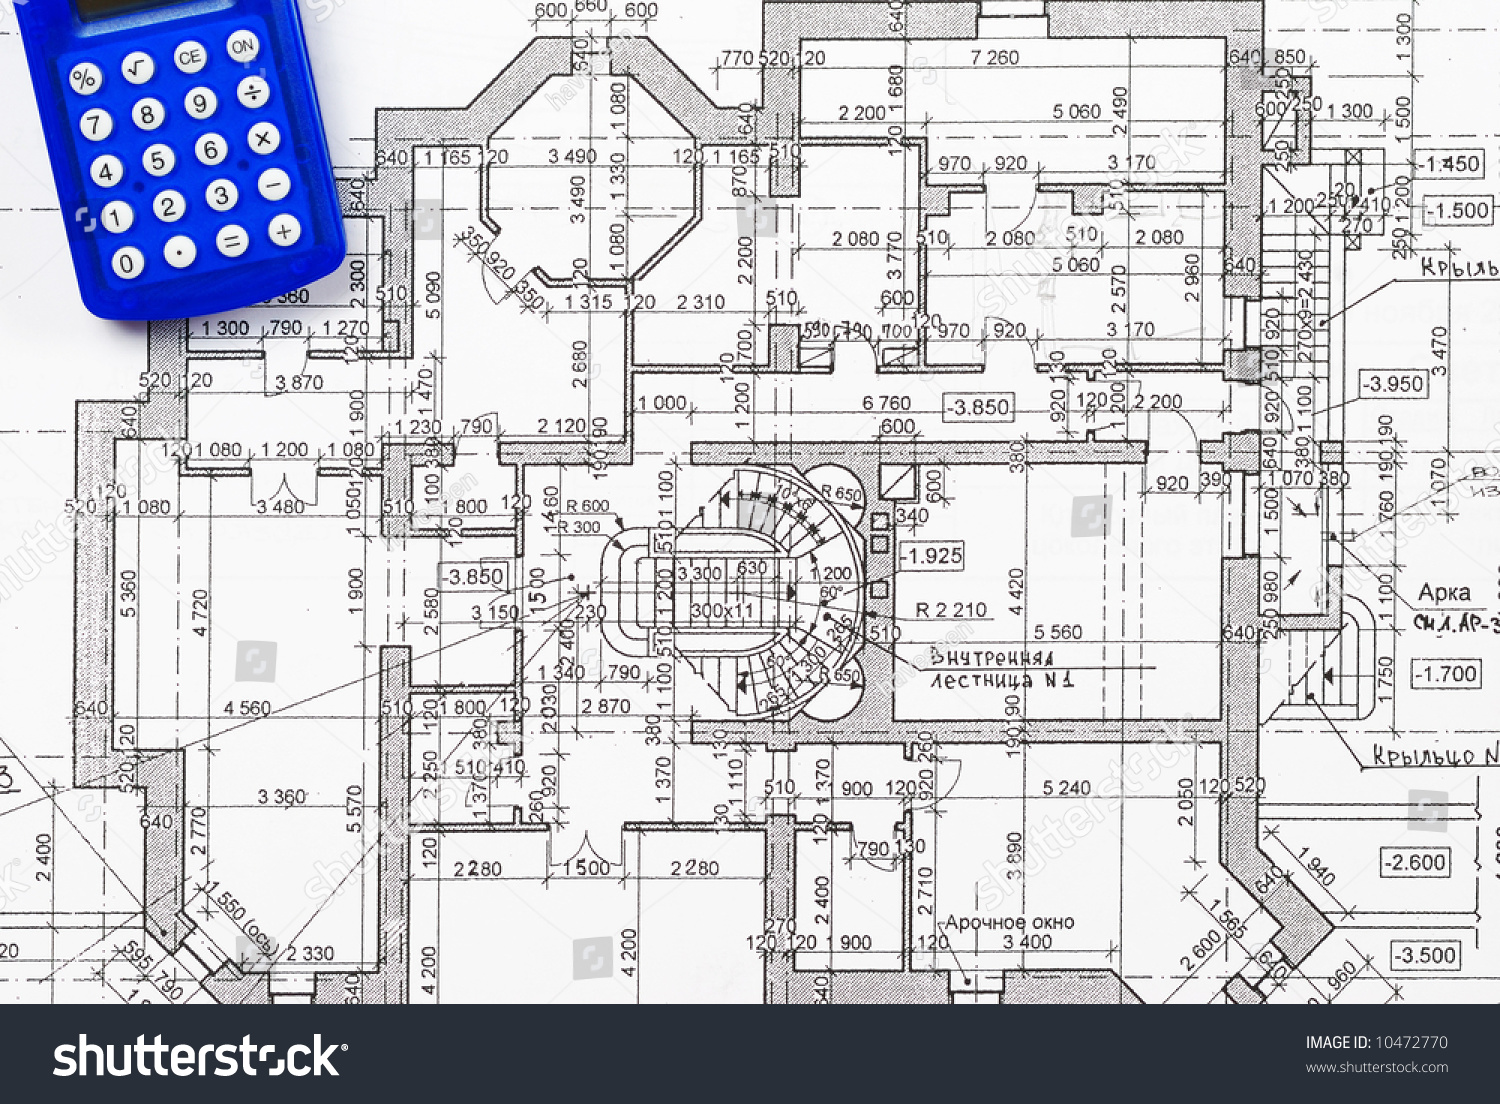 Calculator Over House Plan Blueprints Stock Photo 10472770